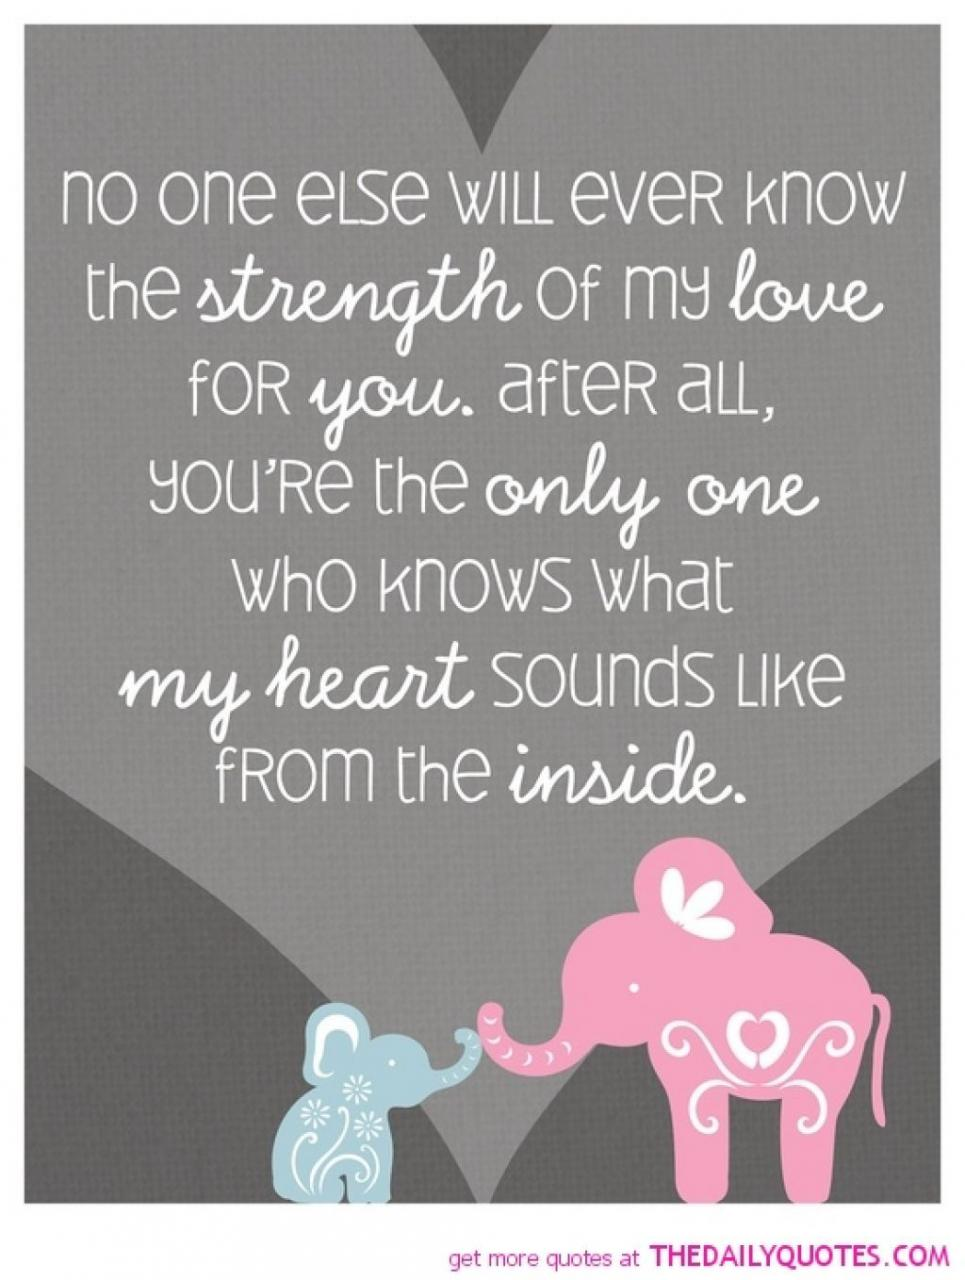 Quotes Mother Daughter Love I Love You Mom Quotes Daily Quotes Of